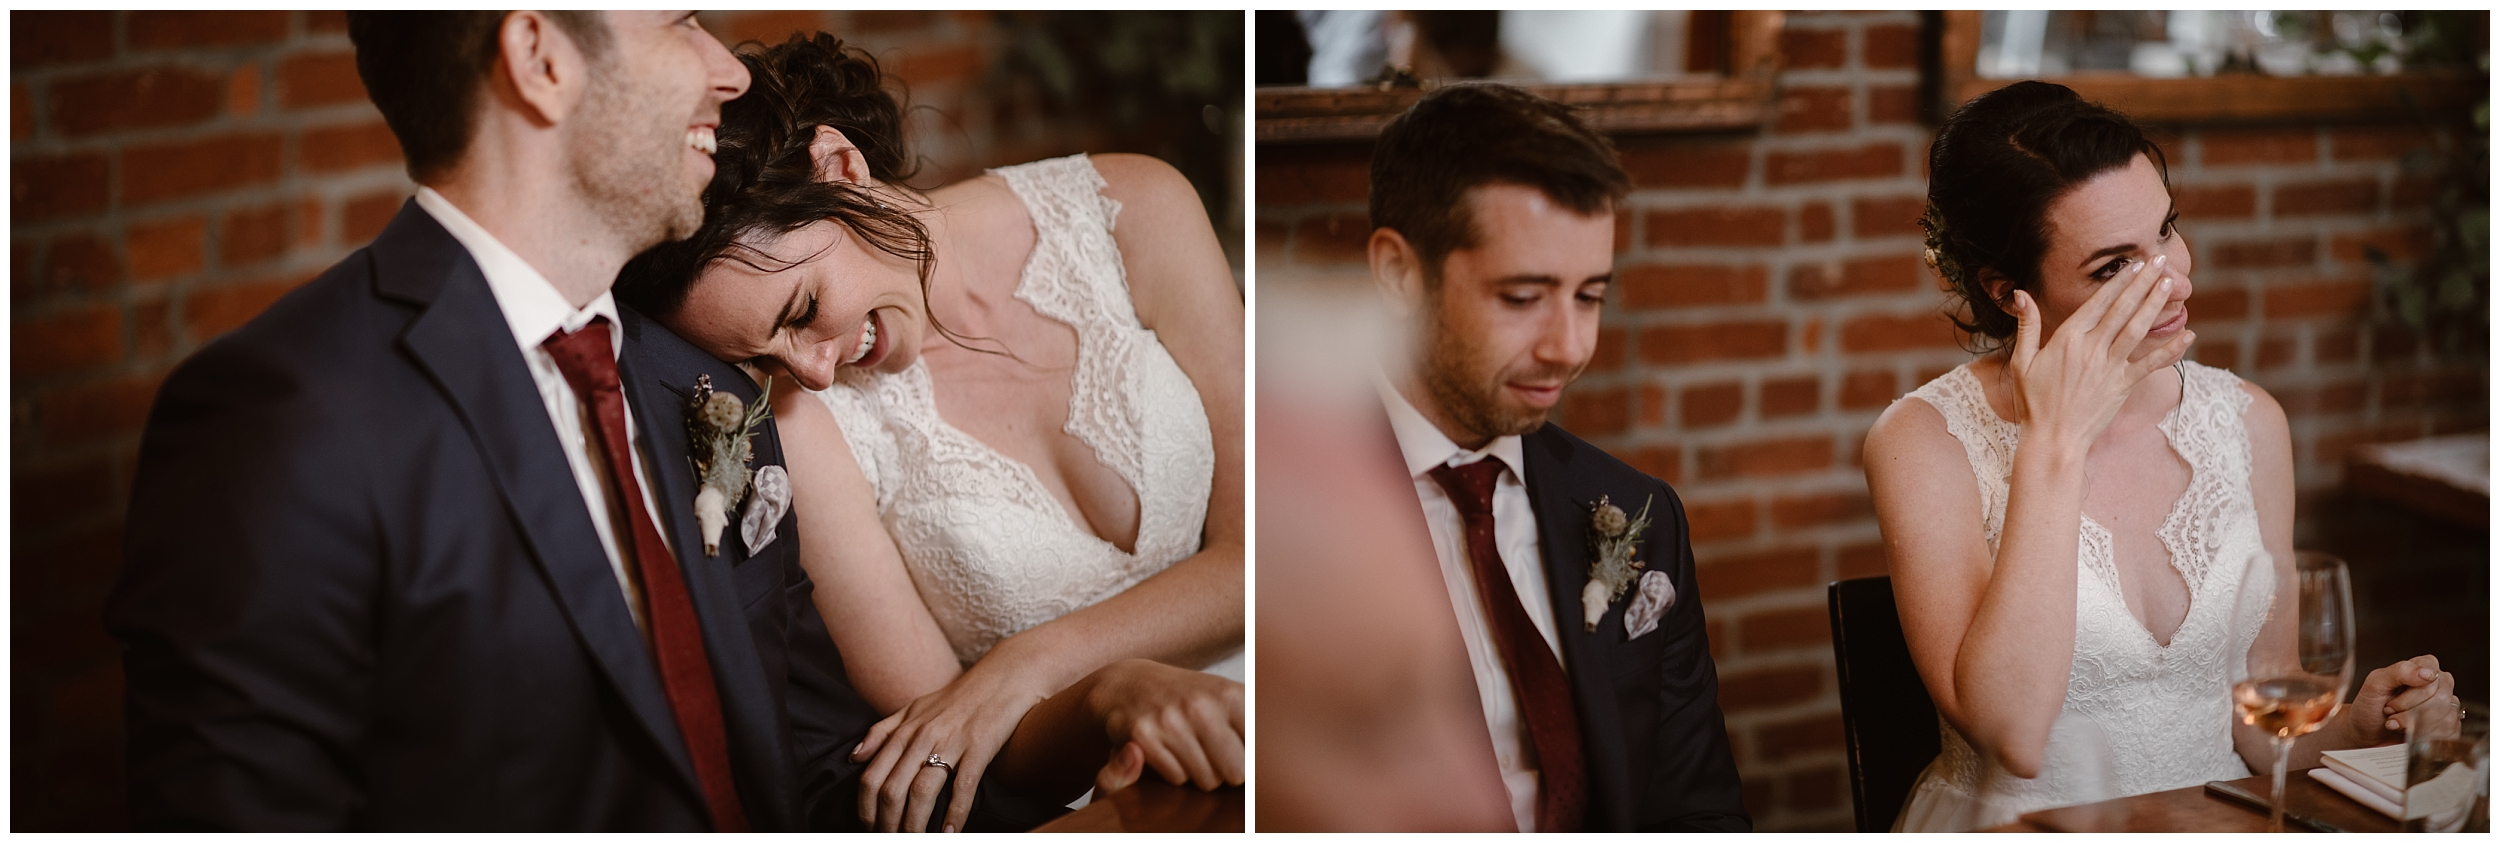 Lauryn leans in on David's shoulder and wipes away tears in these side-by-side elopement pictures captured by Oregon elopement photographer Adventure Instead. Lauryn gets emotional prior to a toast from a family member during the party after eloping